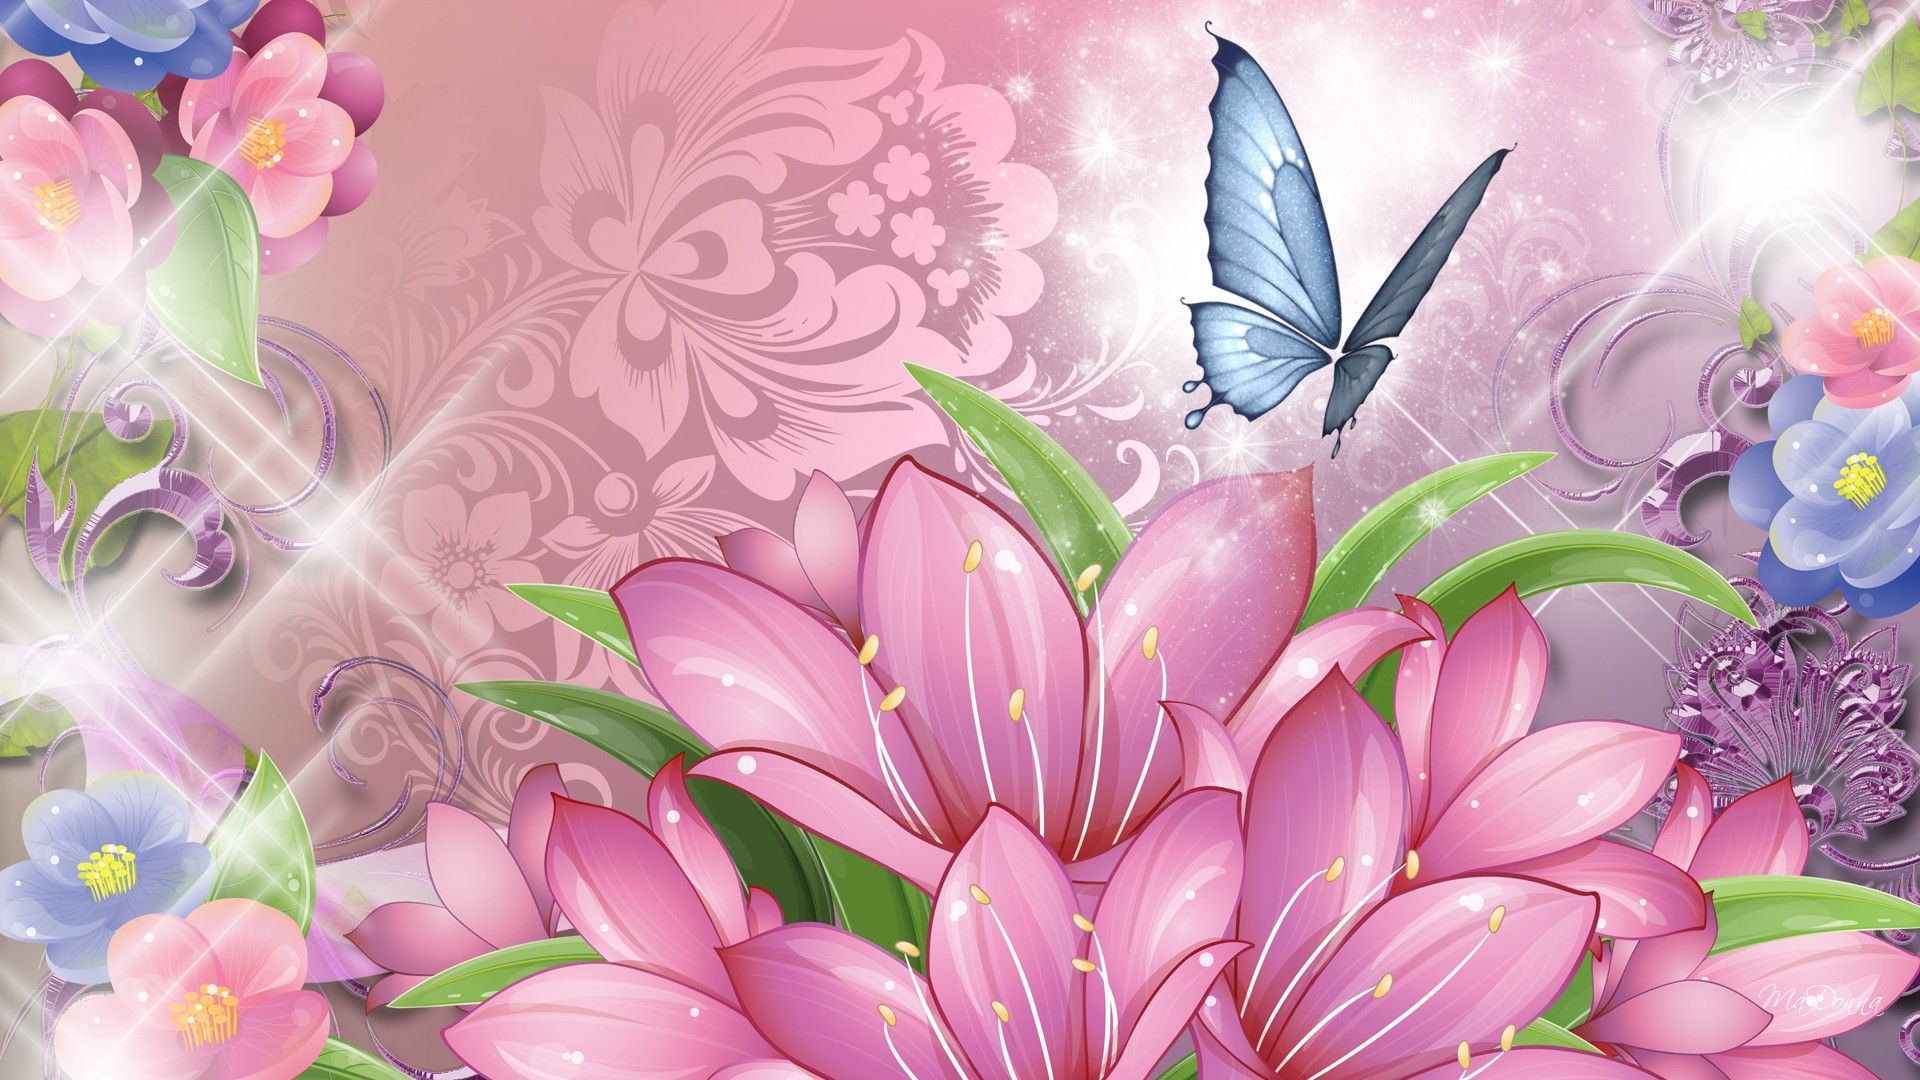 Blue Butterfly and Pink Flowers Wallpaper HD images from pin it 1920x1080